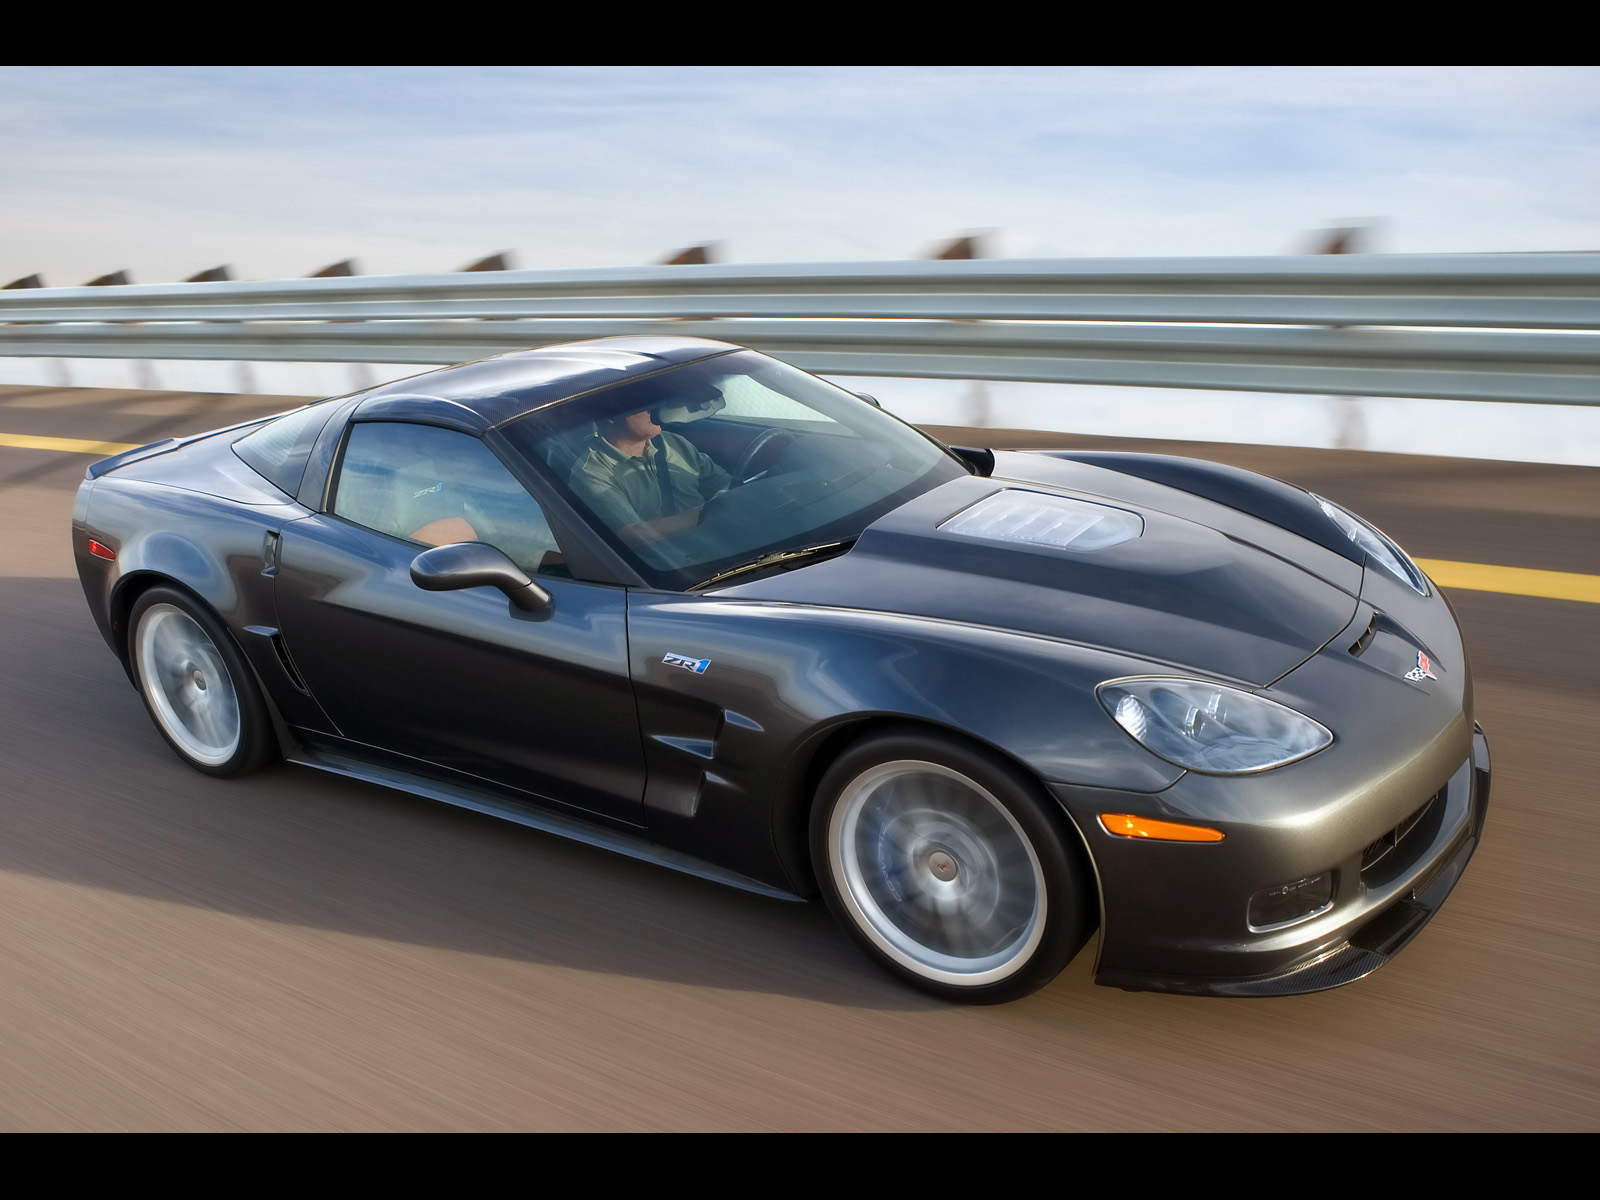 XS Wallpapers HD Chevy Corvette ZR1 Cars Wallpapers 1600x1200